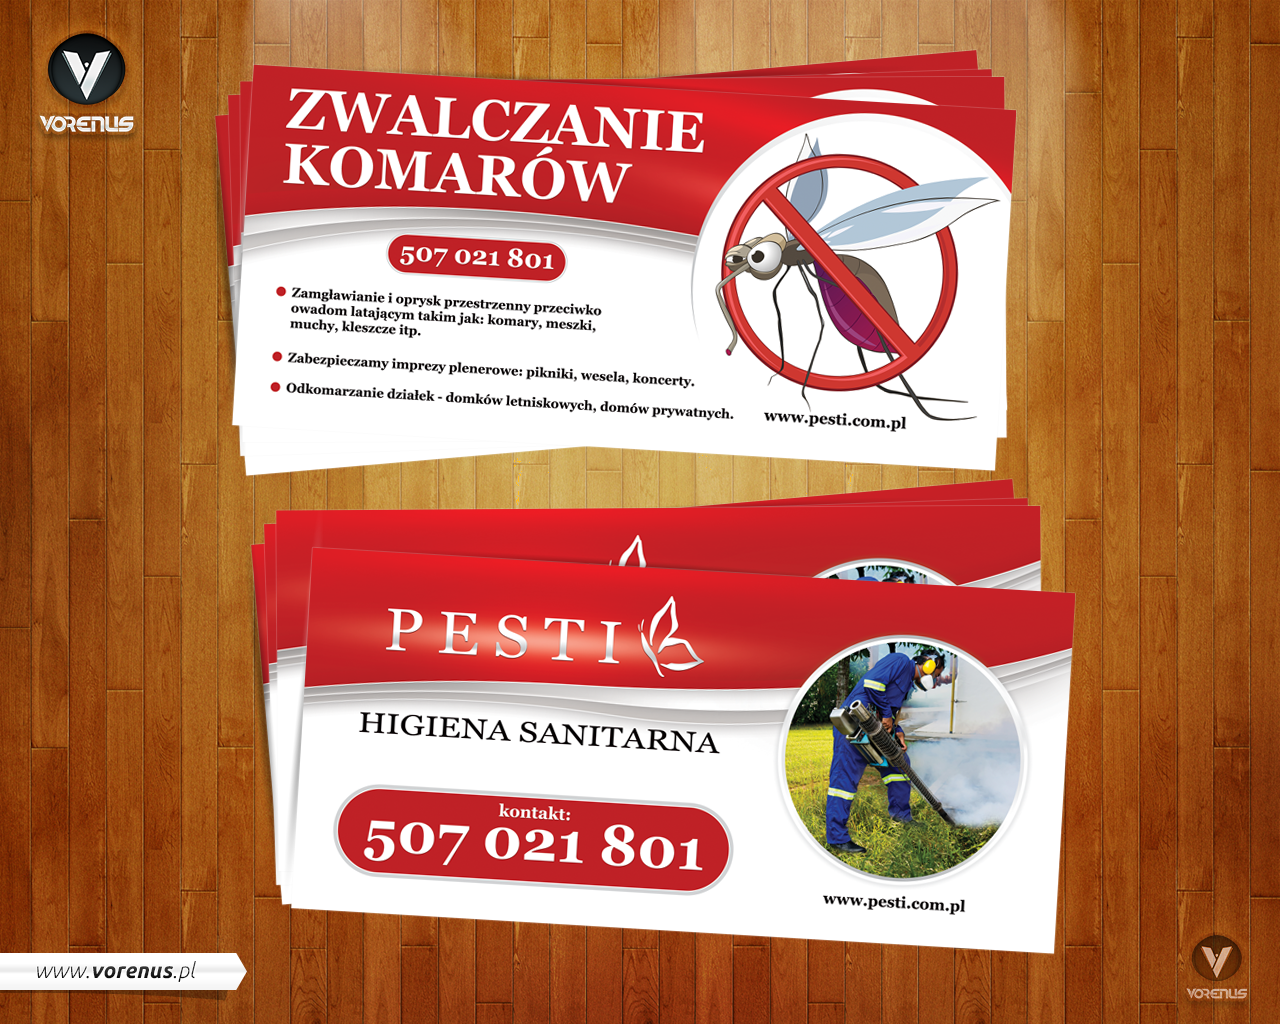 PESTI Sanitary Hygiene - Mosquitos. Flyer DL 99x210mm project presentation